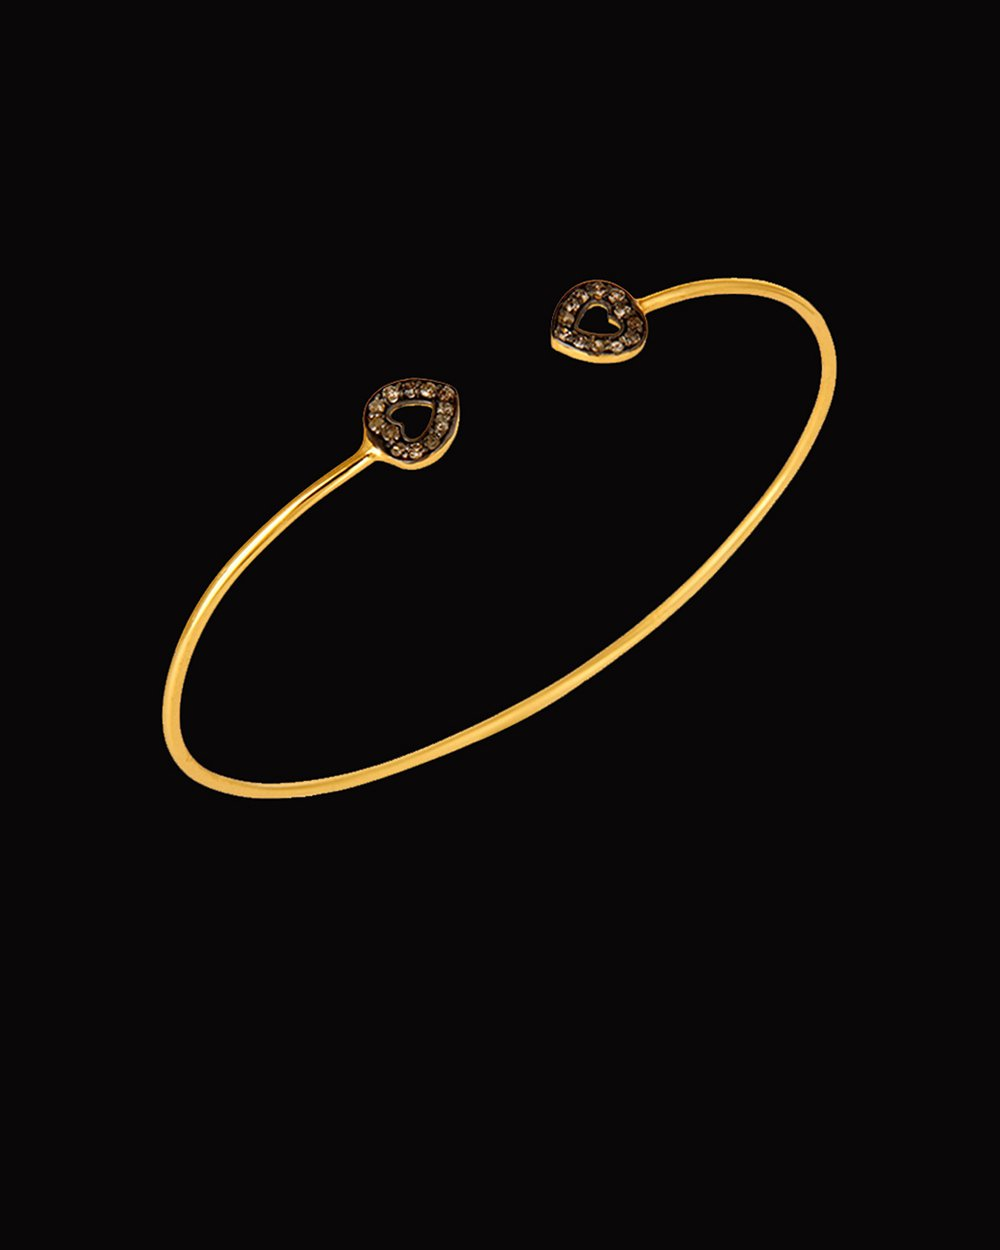 Double Heart Diamonds Adjustable Cuff Bracelet in Gold Vermeil